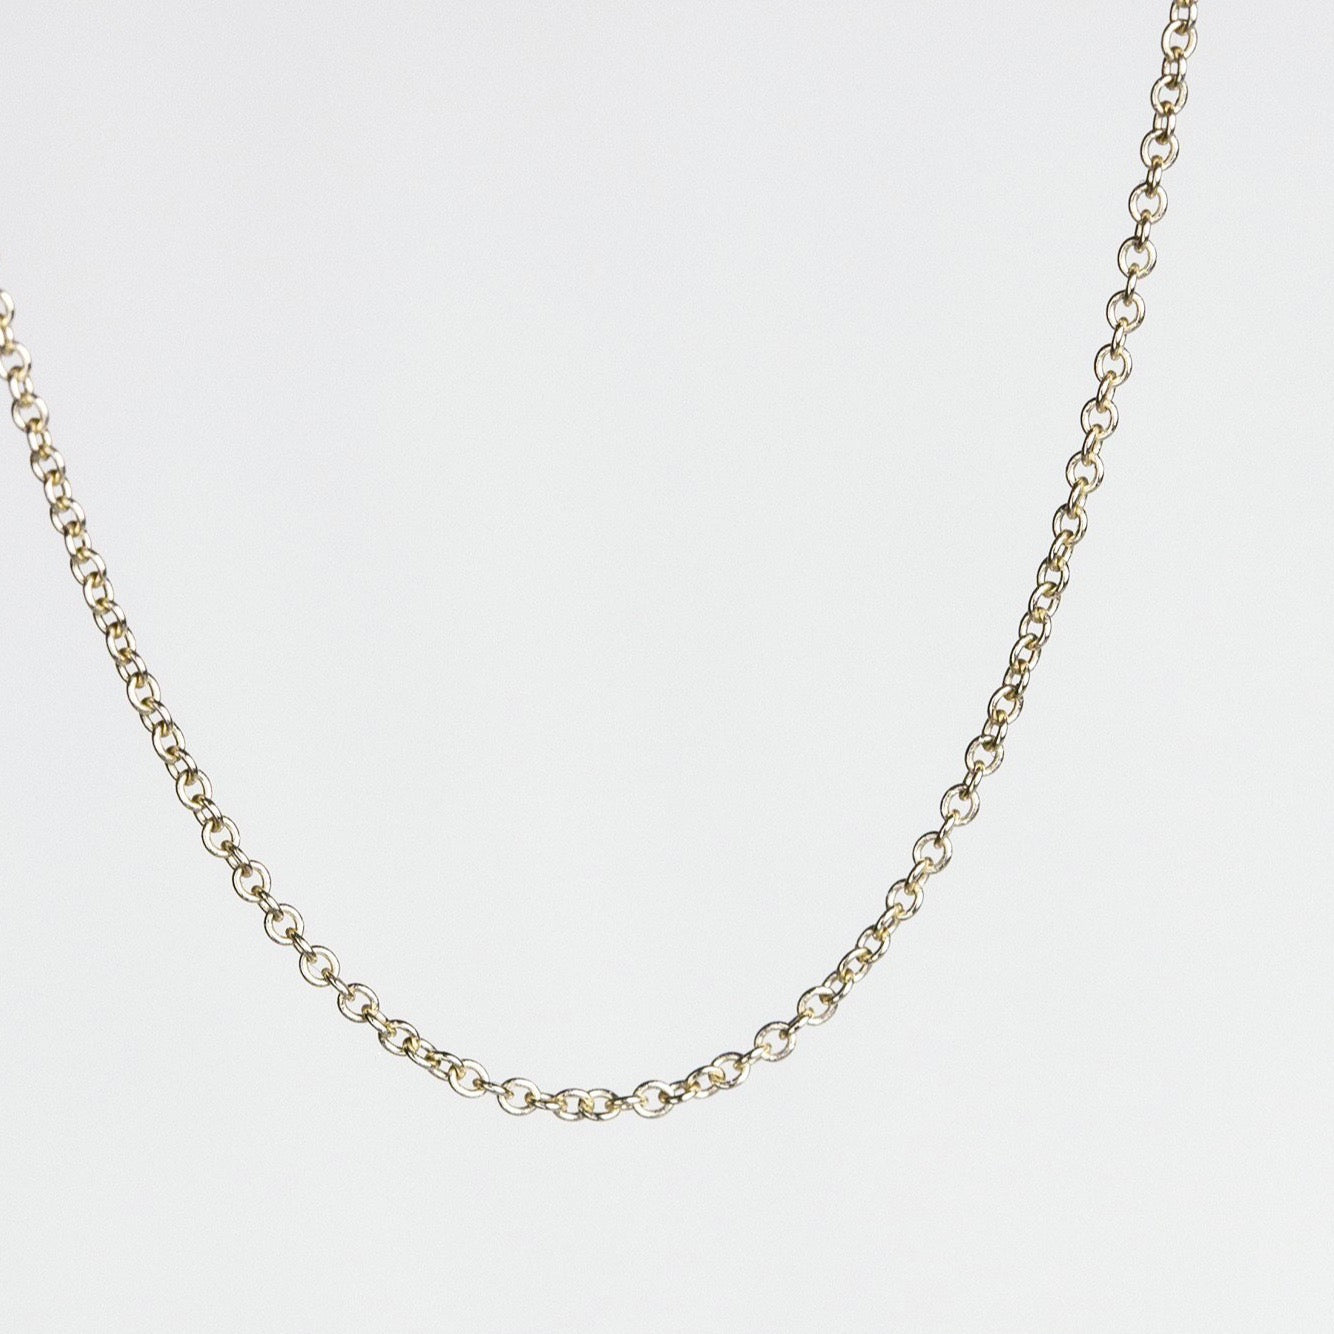 fine trace chain in yellow gold